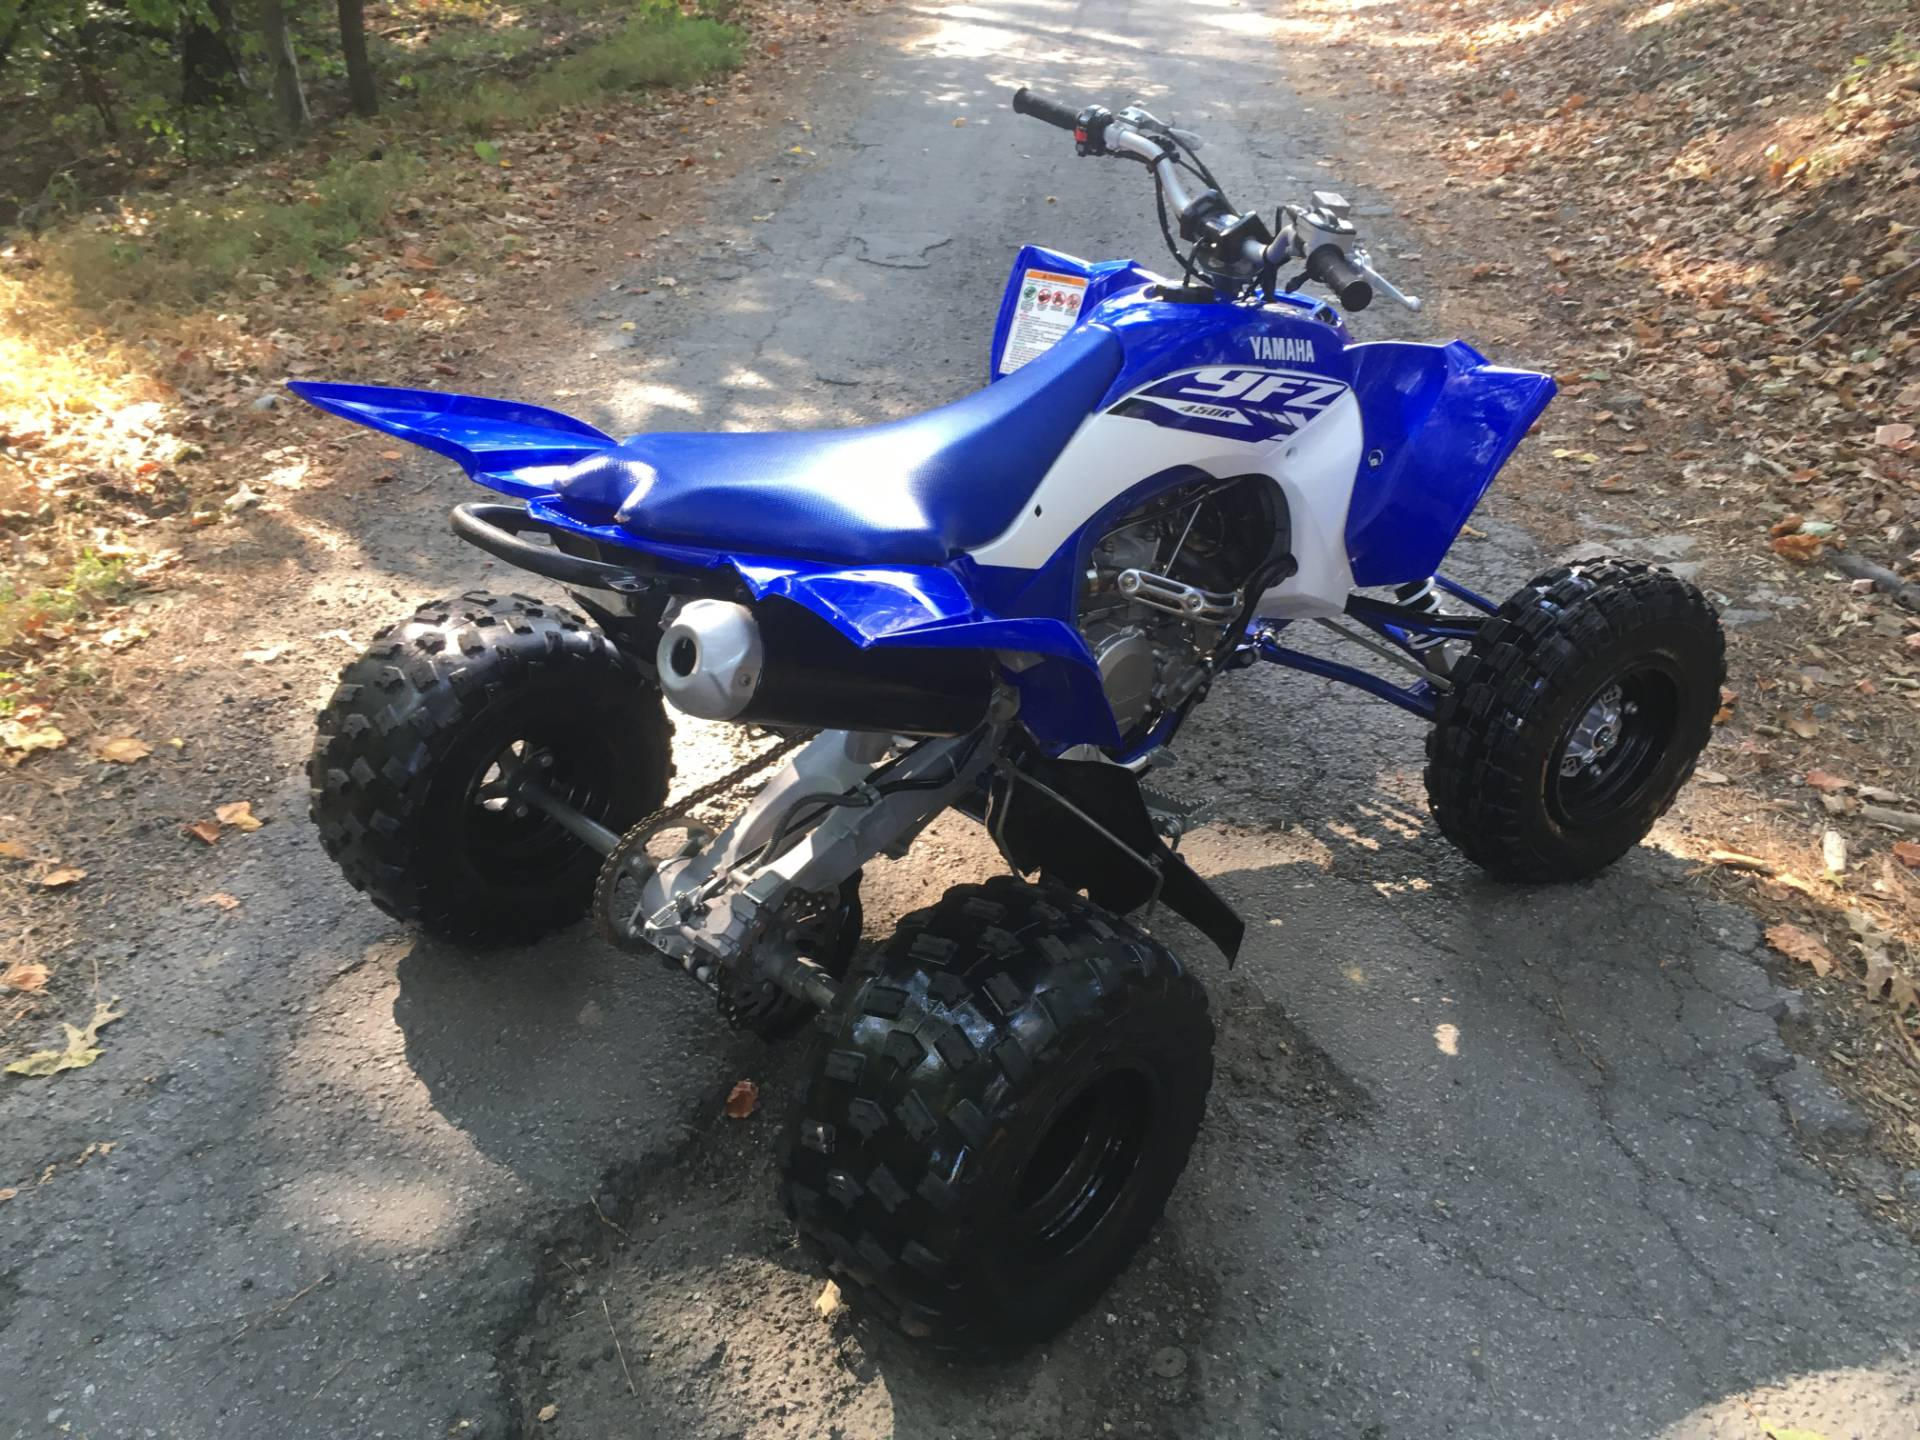 2018 YAMAHA YFZ 450 R in Woodstock, Georgia - Photo 4